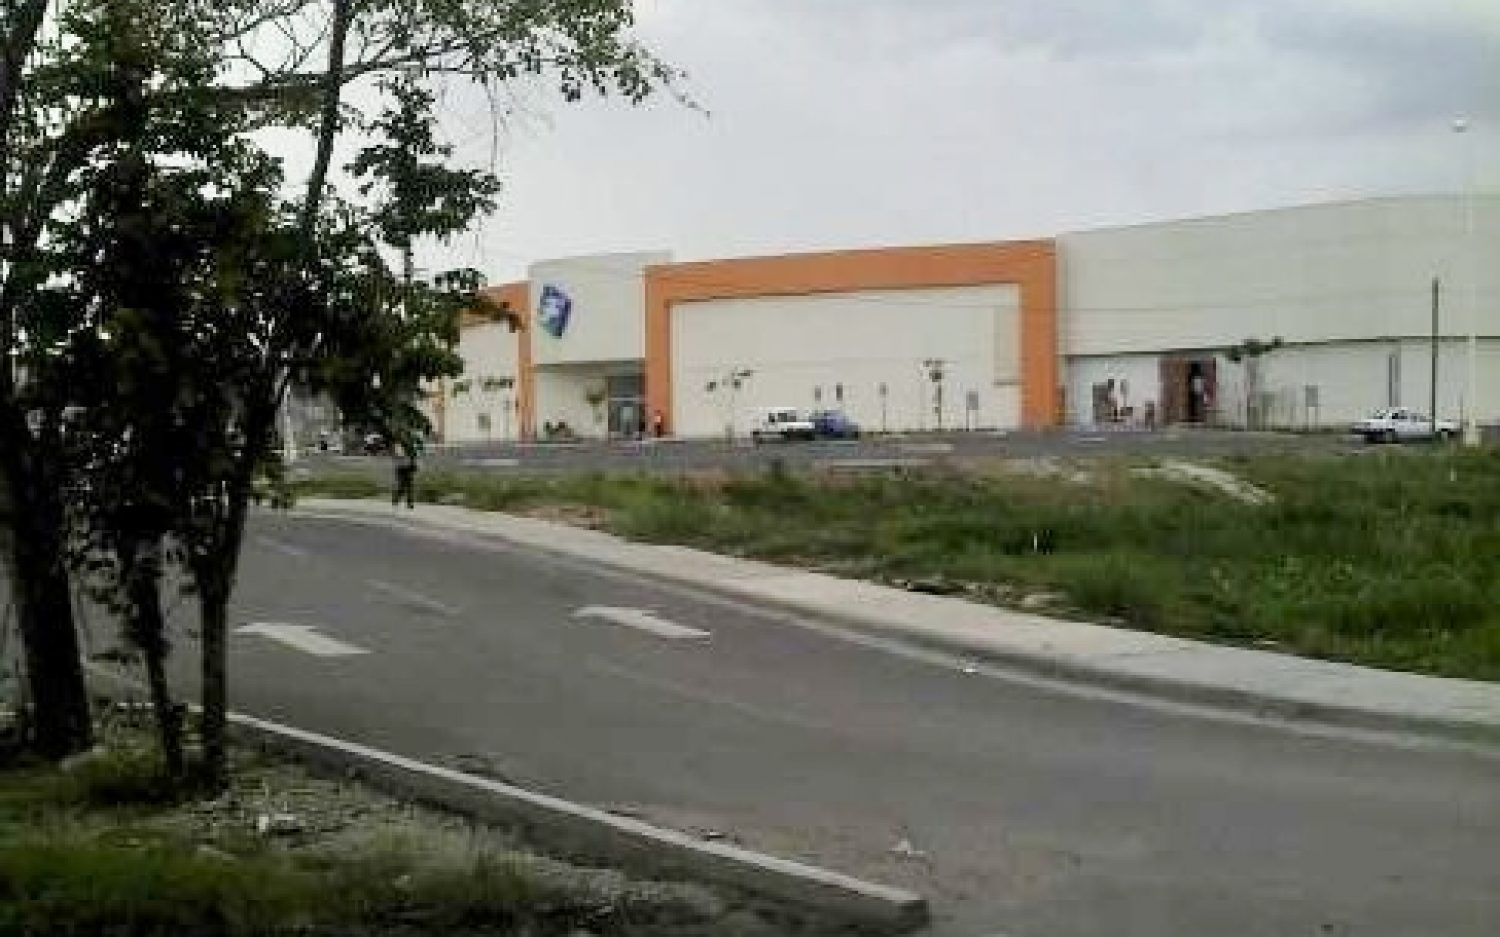 Co-Plaza Sendero Villahermosa (8)